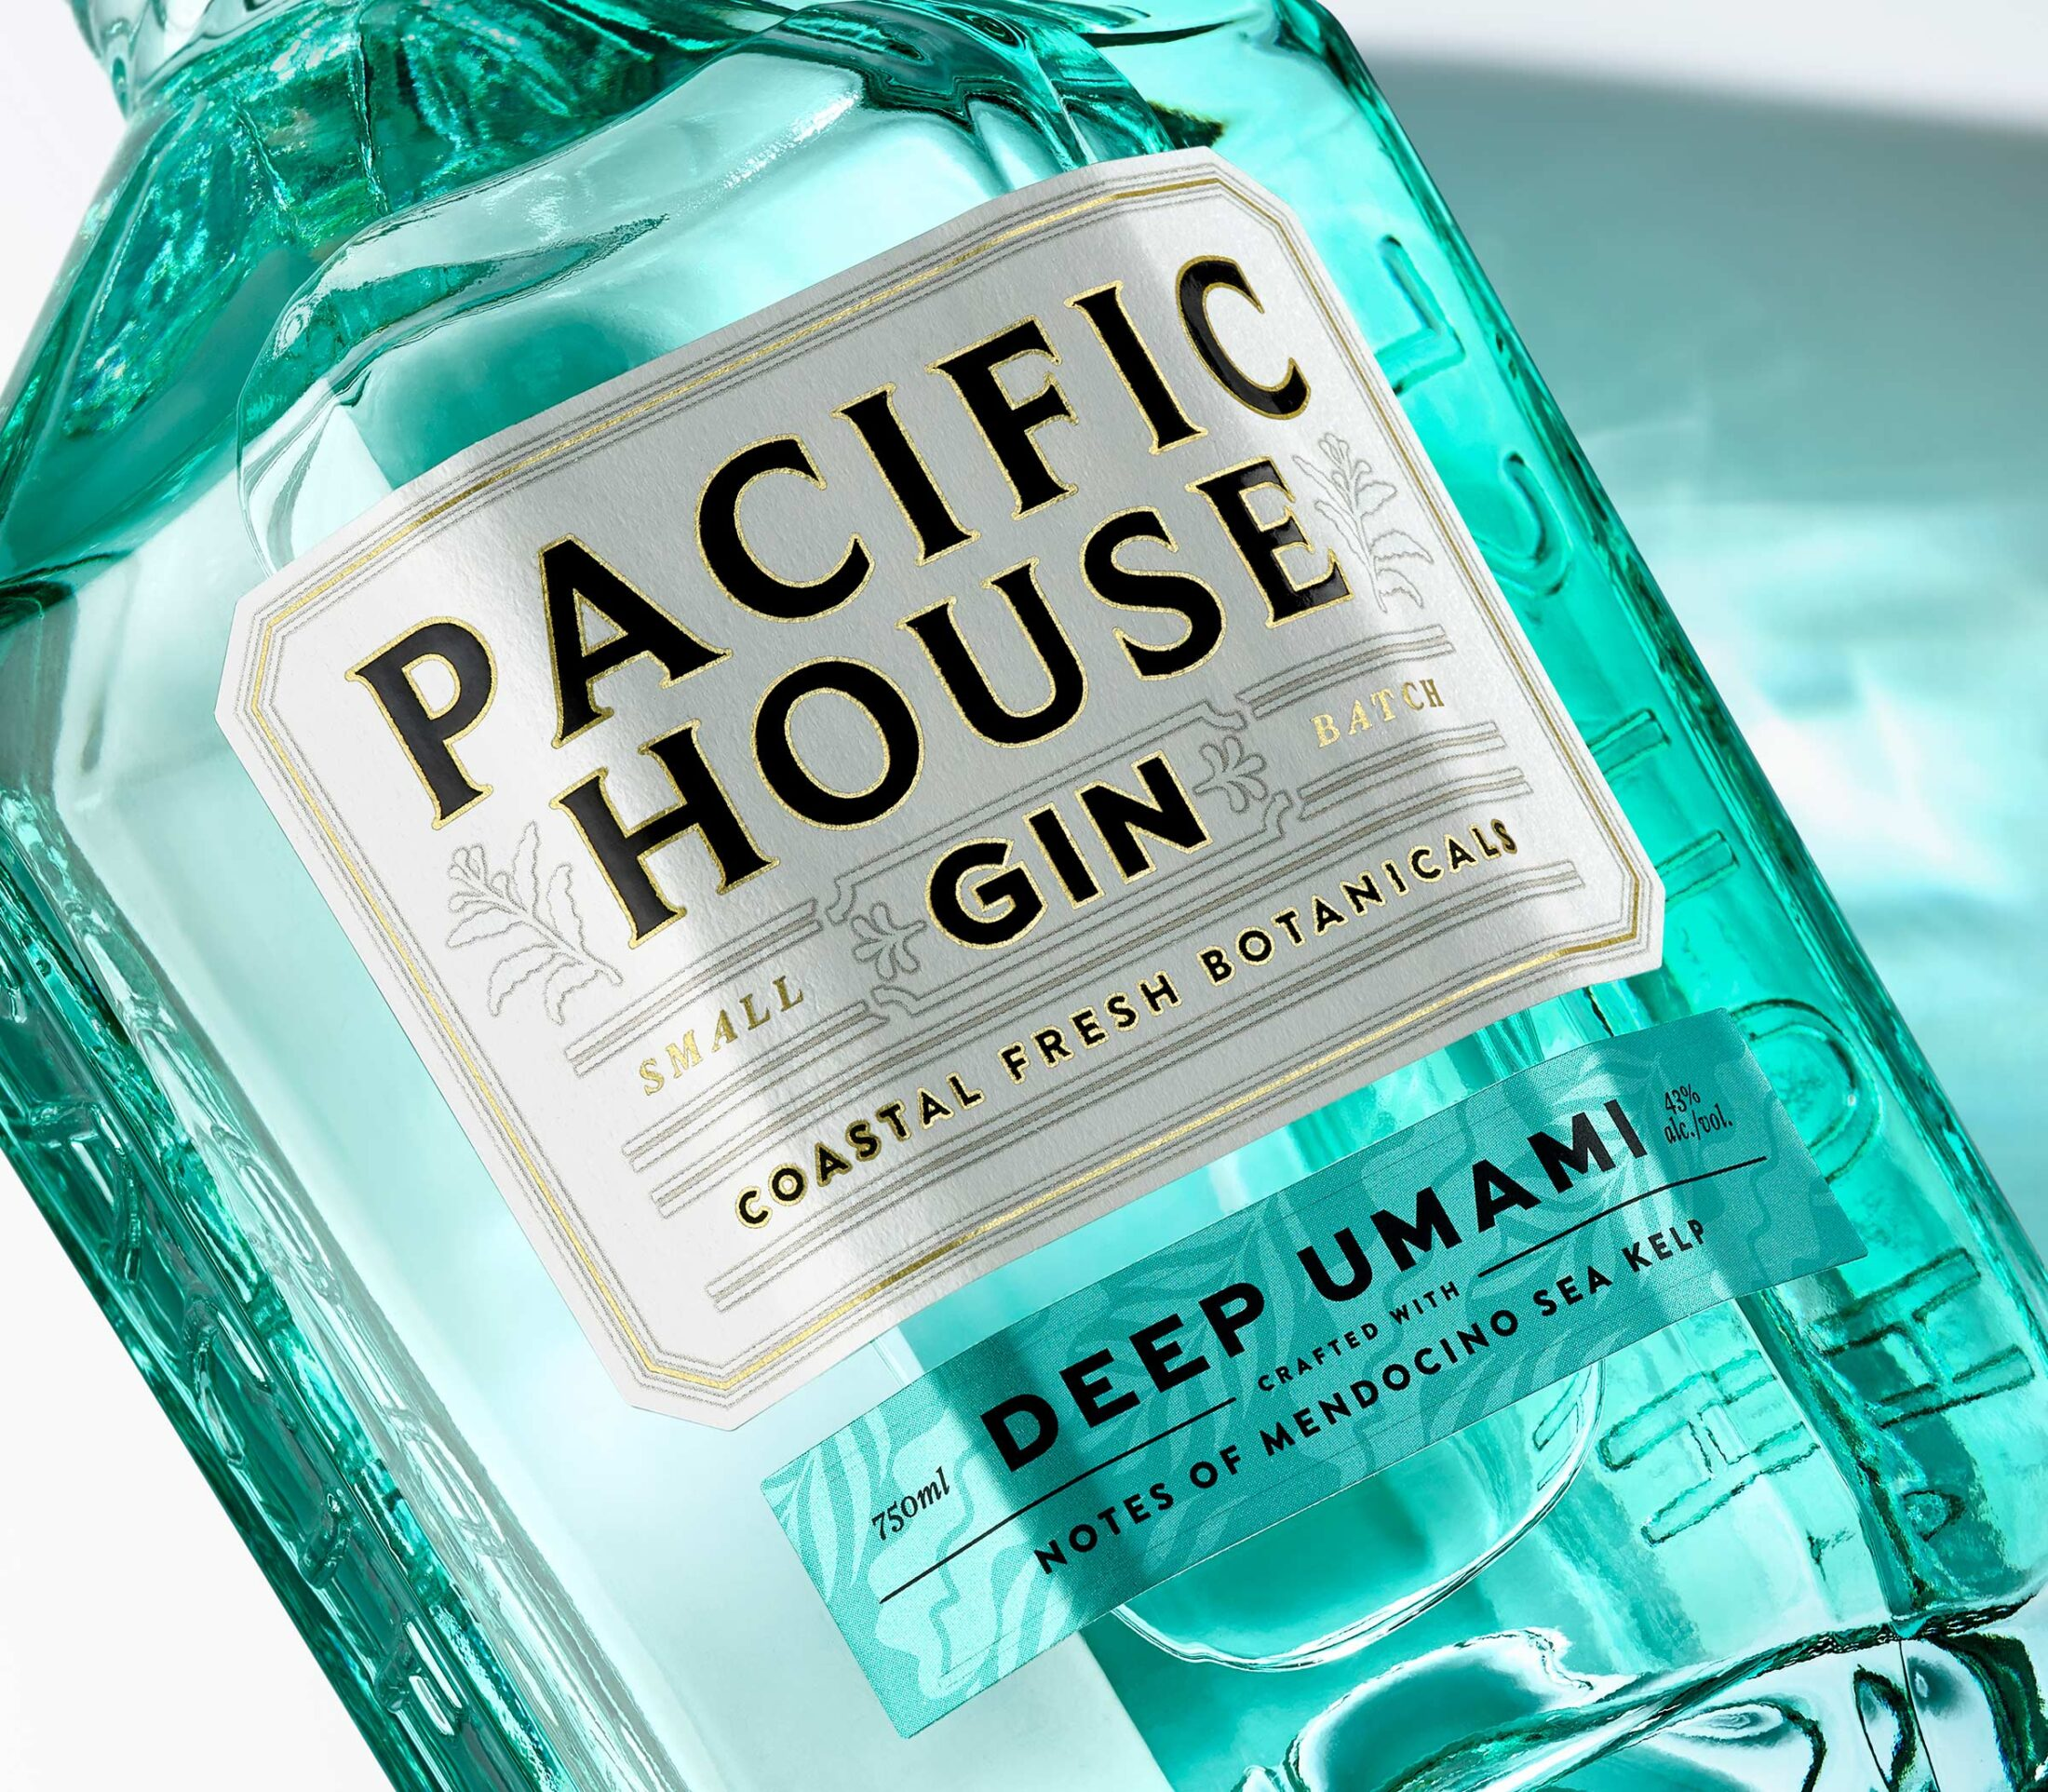 Pacific House Gin